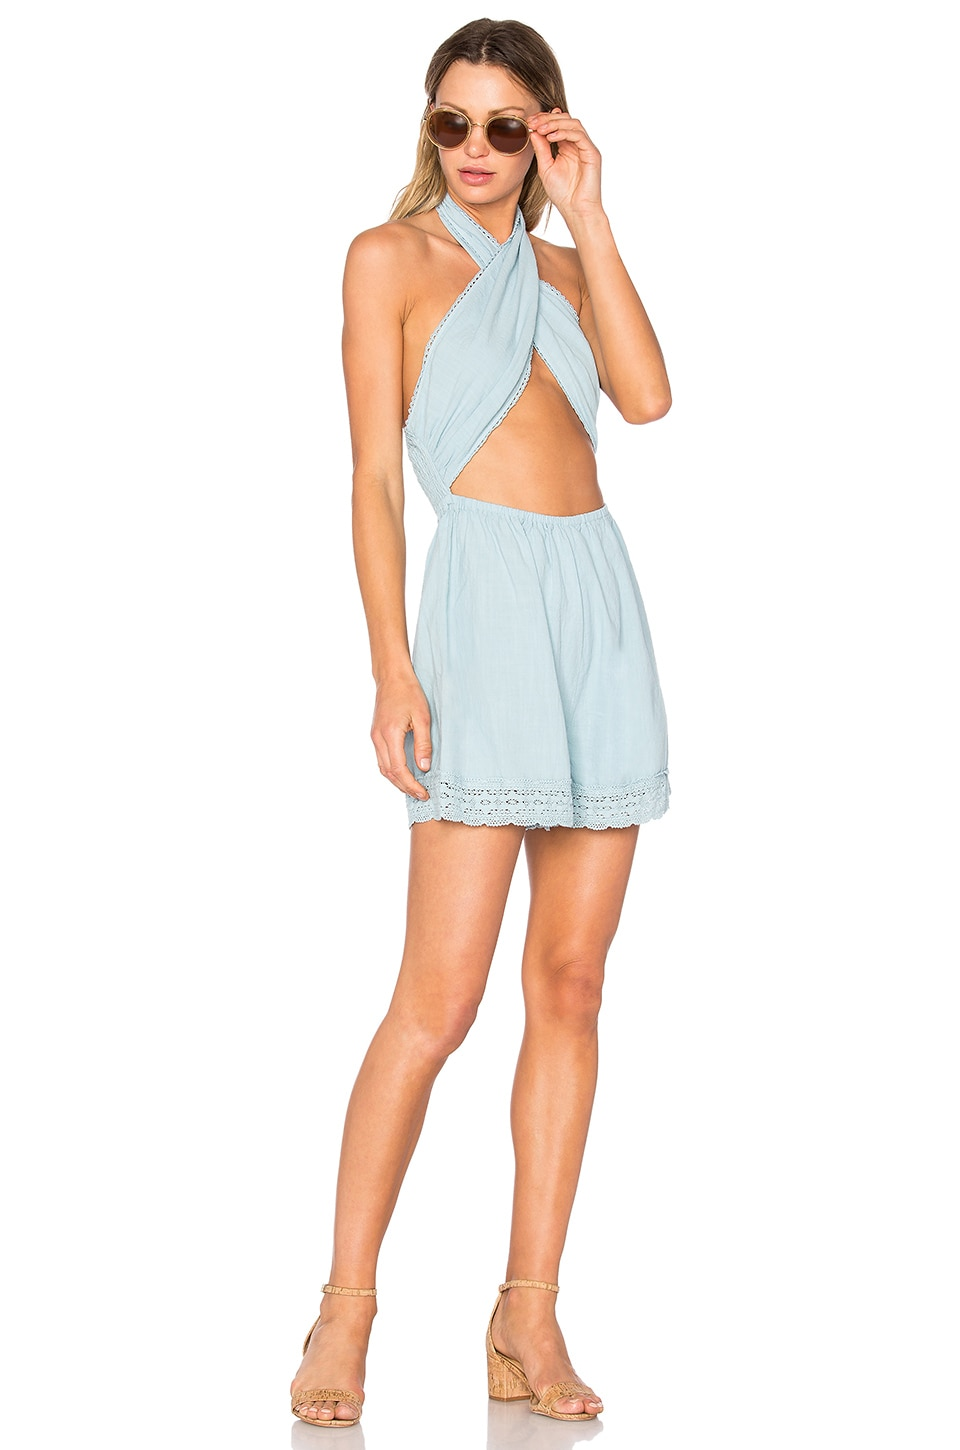 Mecury Blues Playsuit by Minkpink